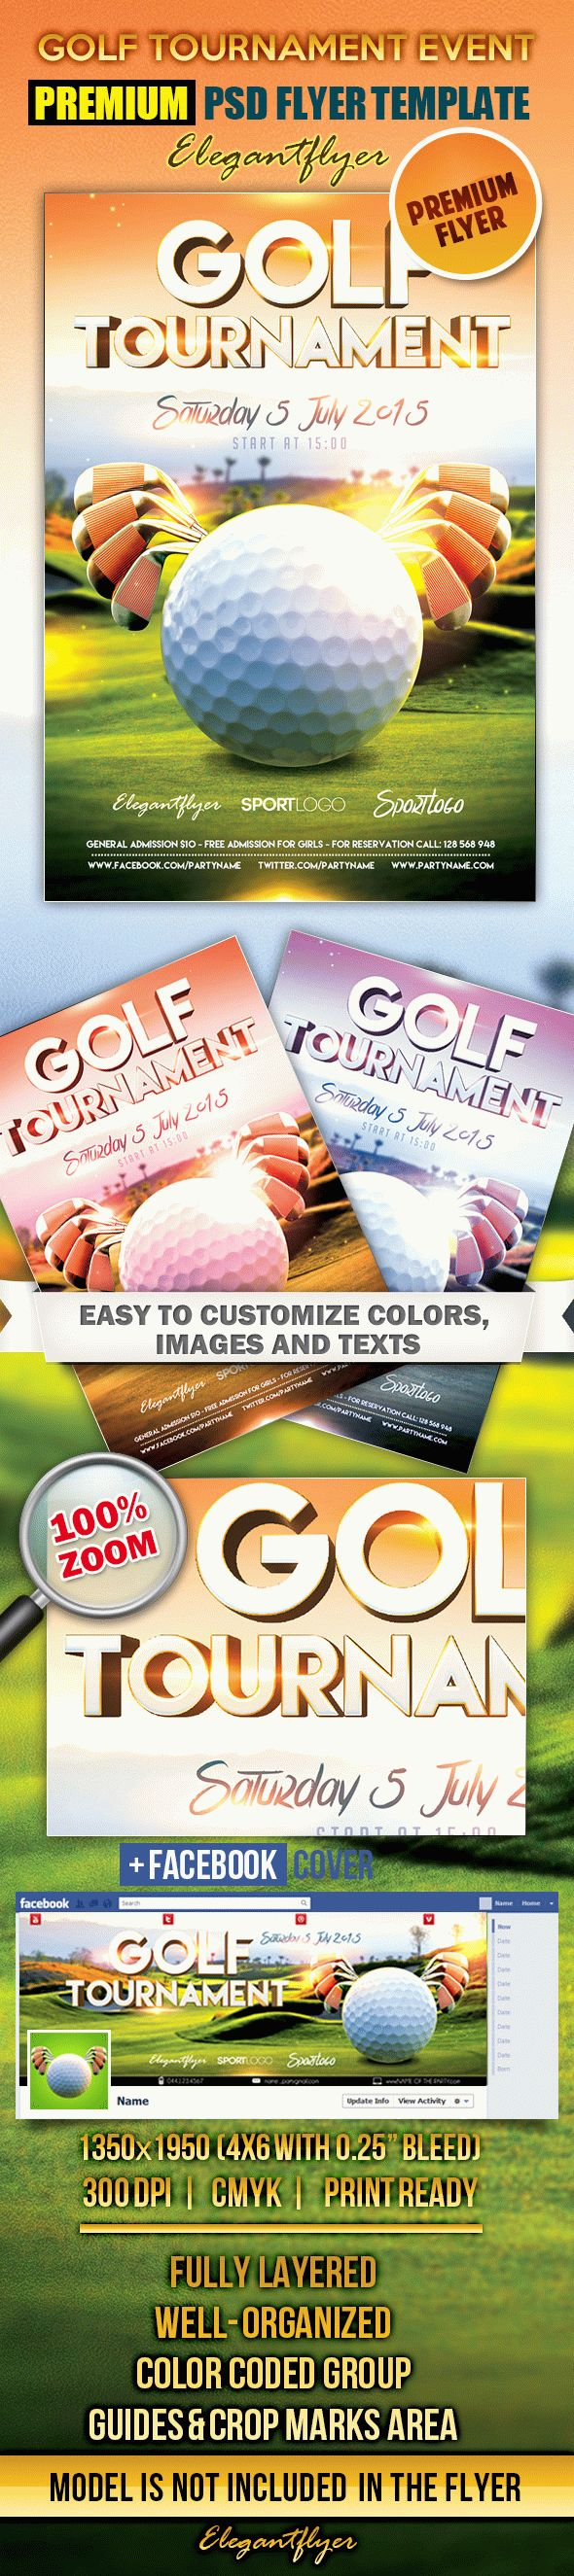 Golf tournament event flyer psd template by elegantflyer for Golf tournament program template